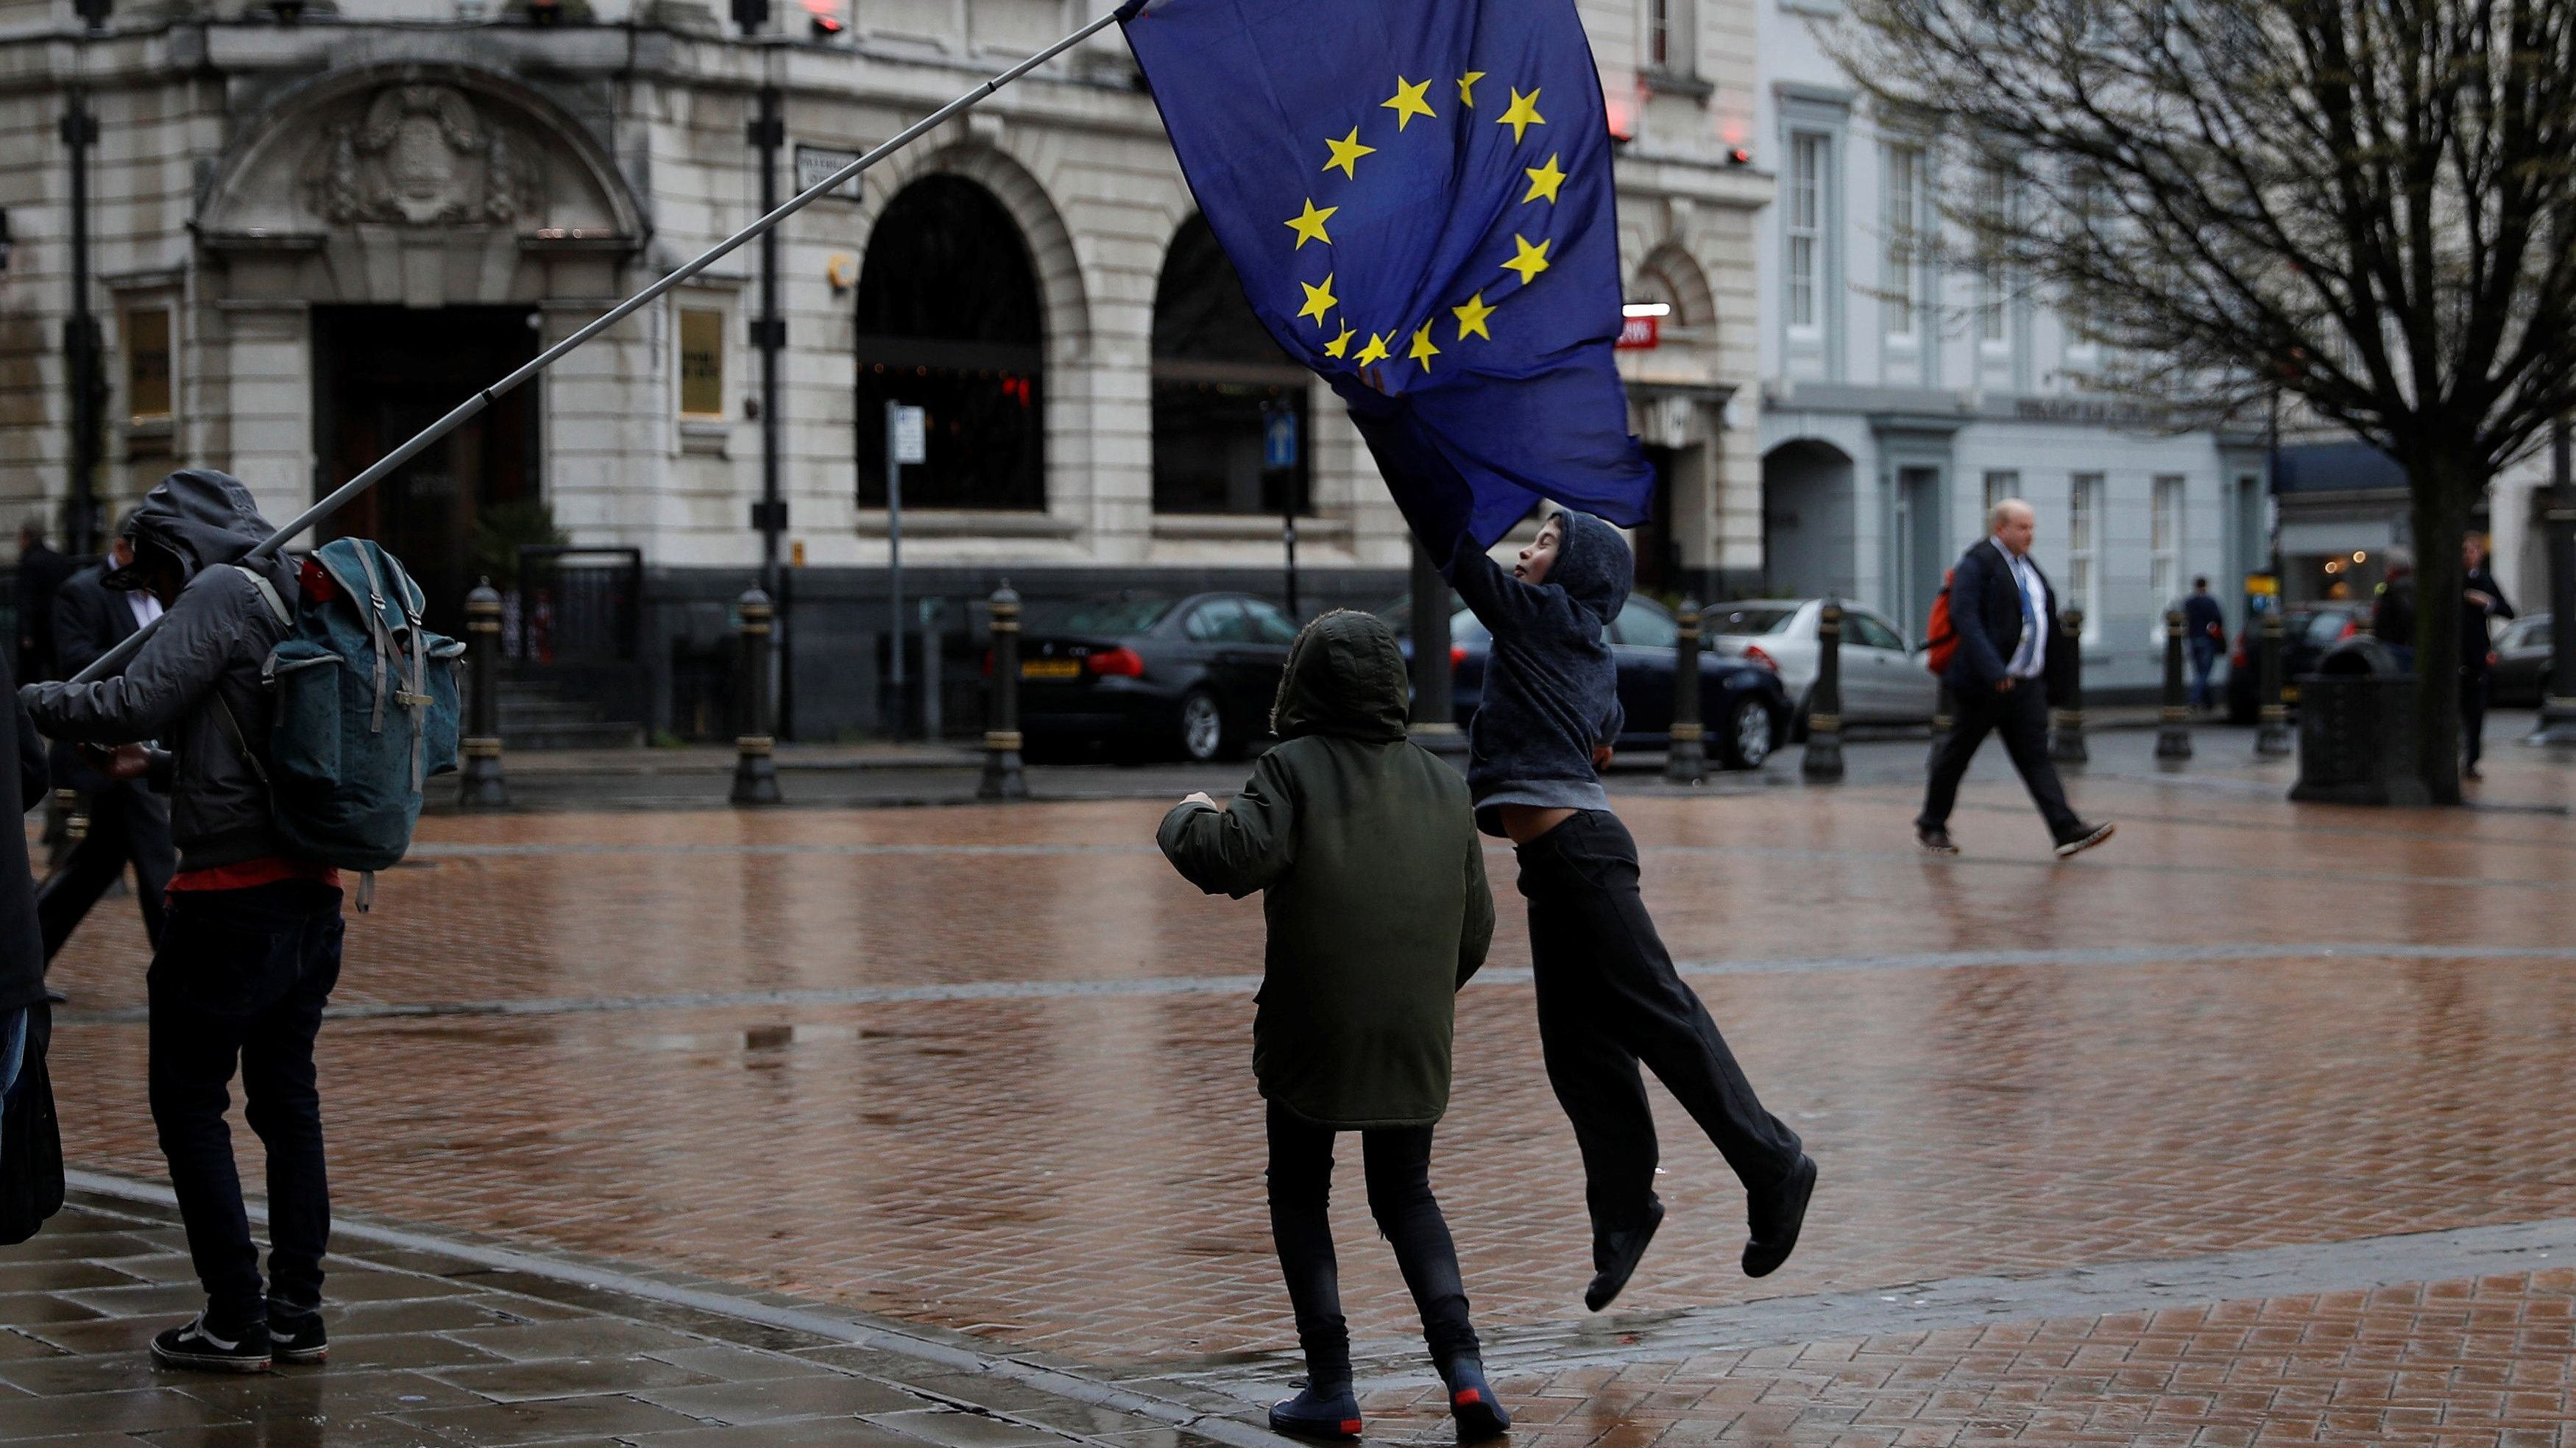 Children jump up to grab a European Union flag during an anti-Brexit demonstration after Britain's Prime Minister Theresa May triggered the process by which the United Kingdom will leave the Euopean Union, in Birmingham